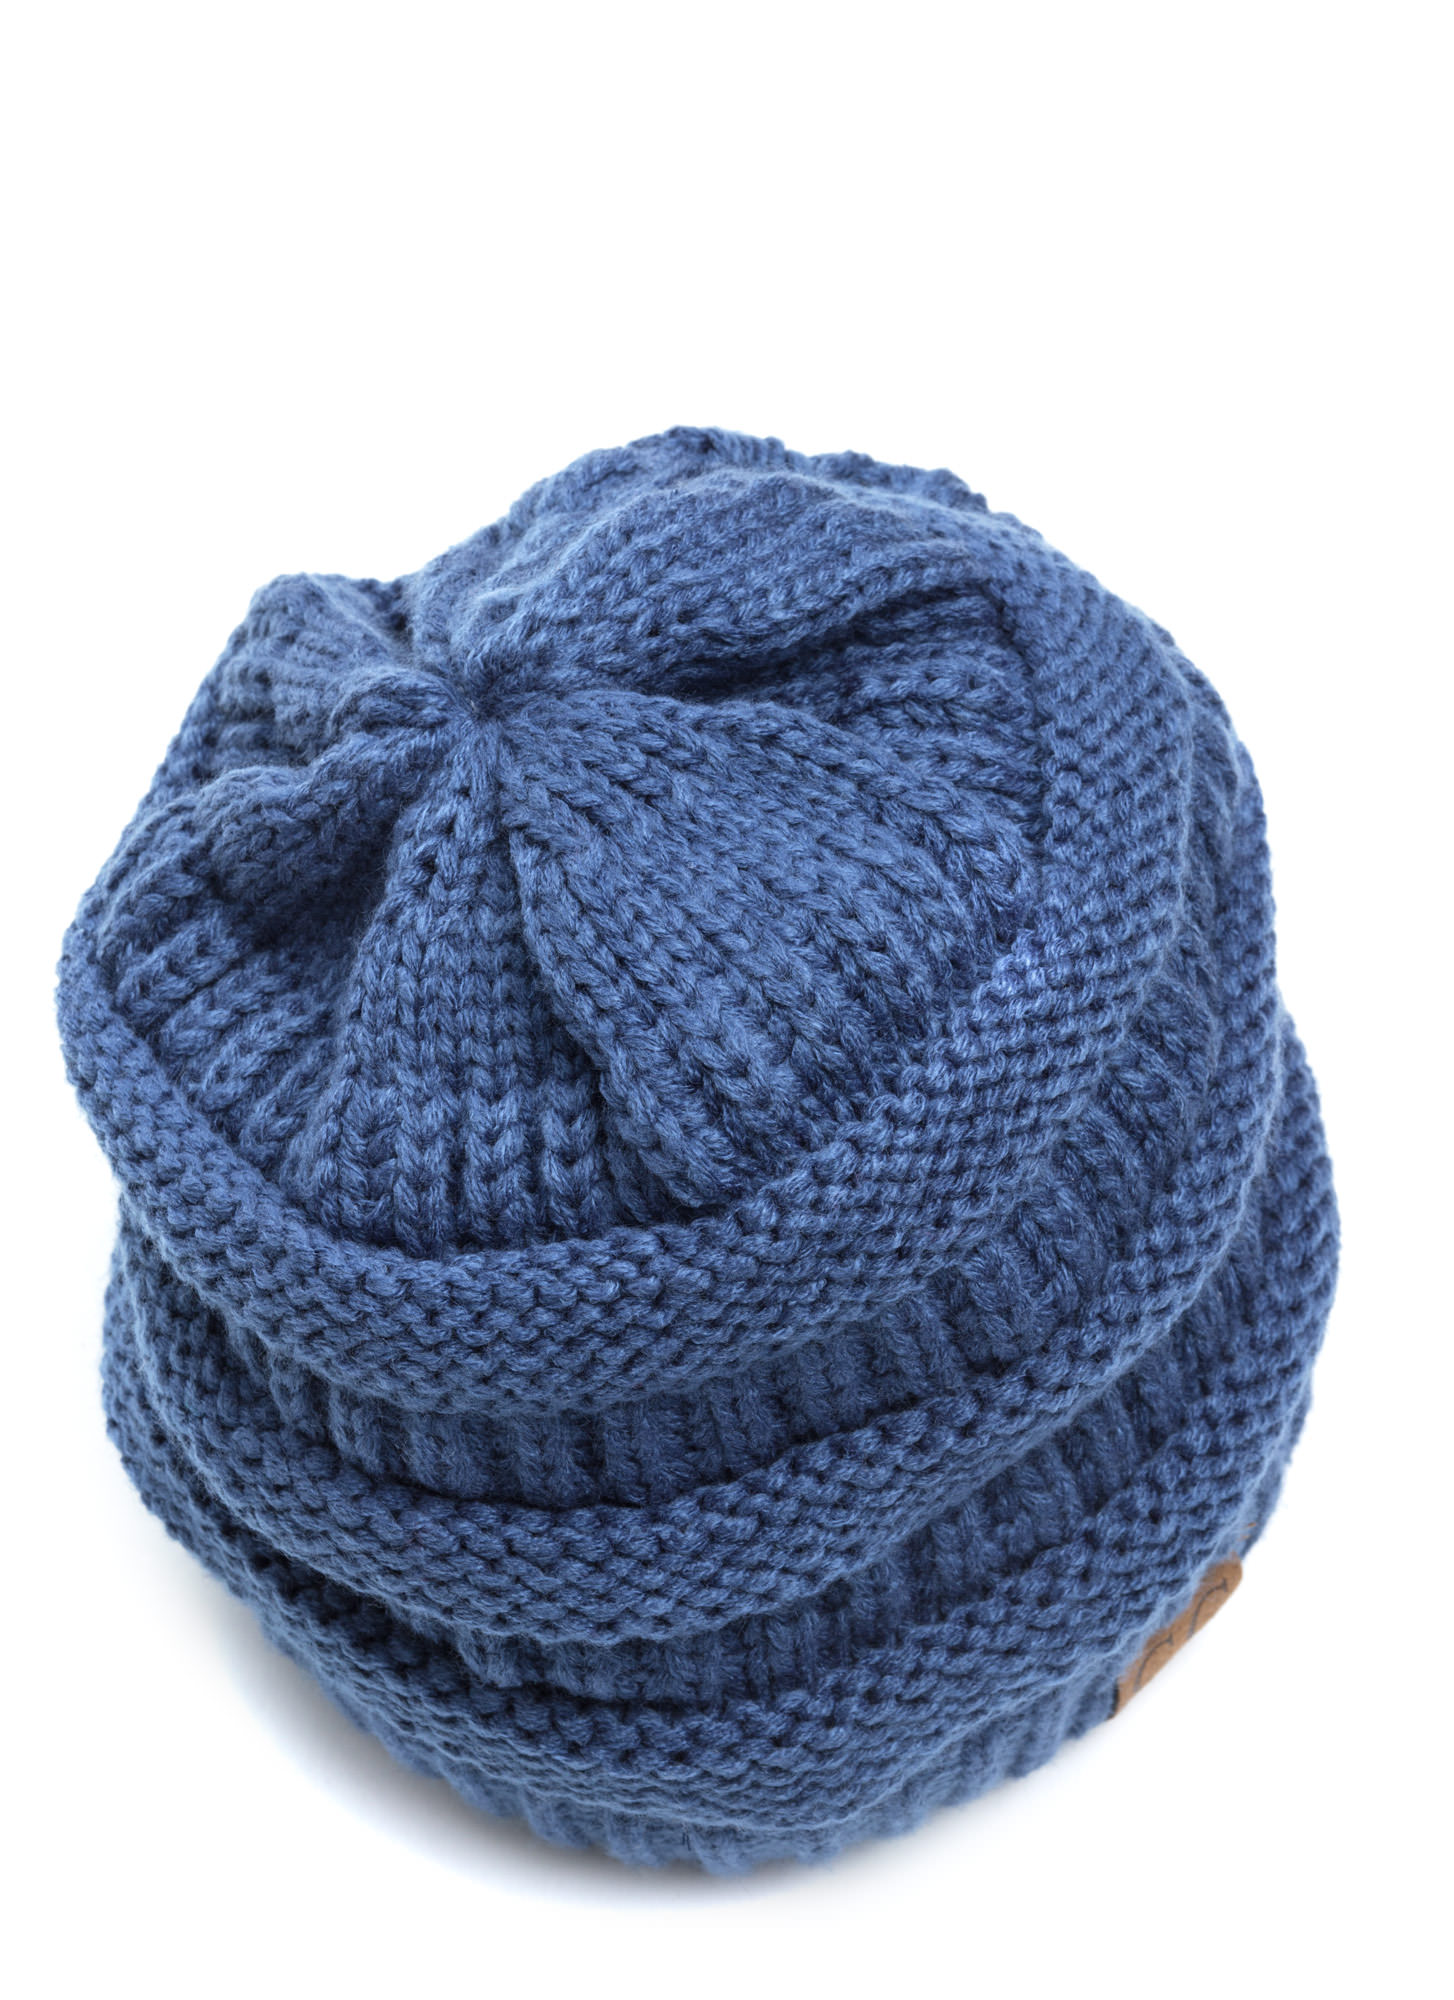 Cozy CC Cable Knit Beanie BLUE (Final Sale)